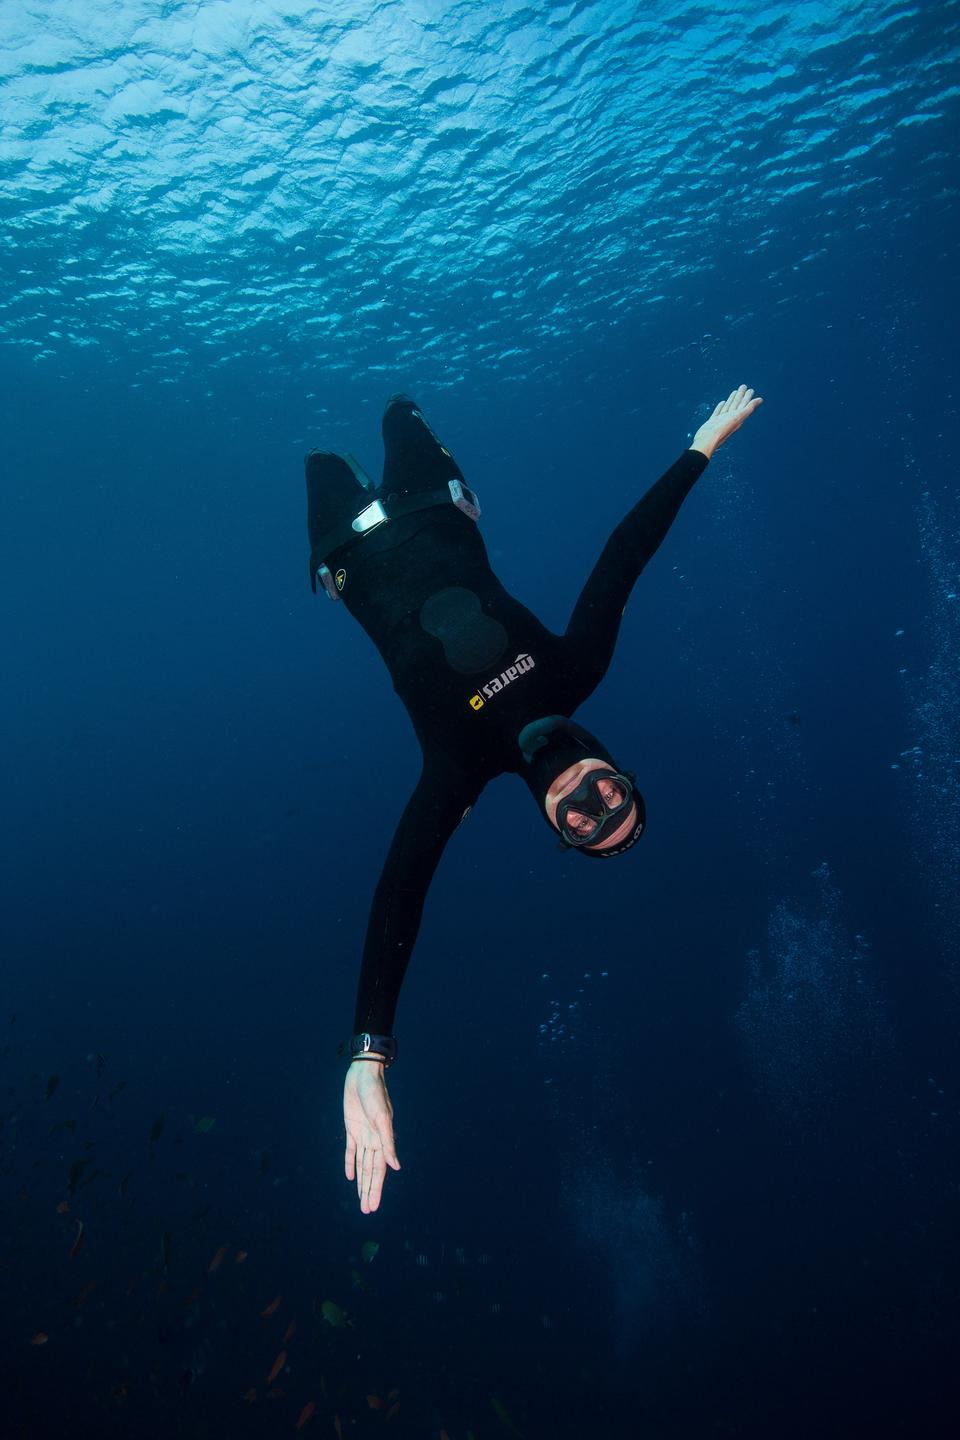 A free diver on descent with arms open